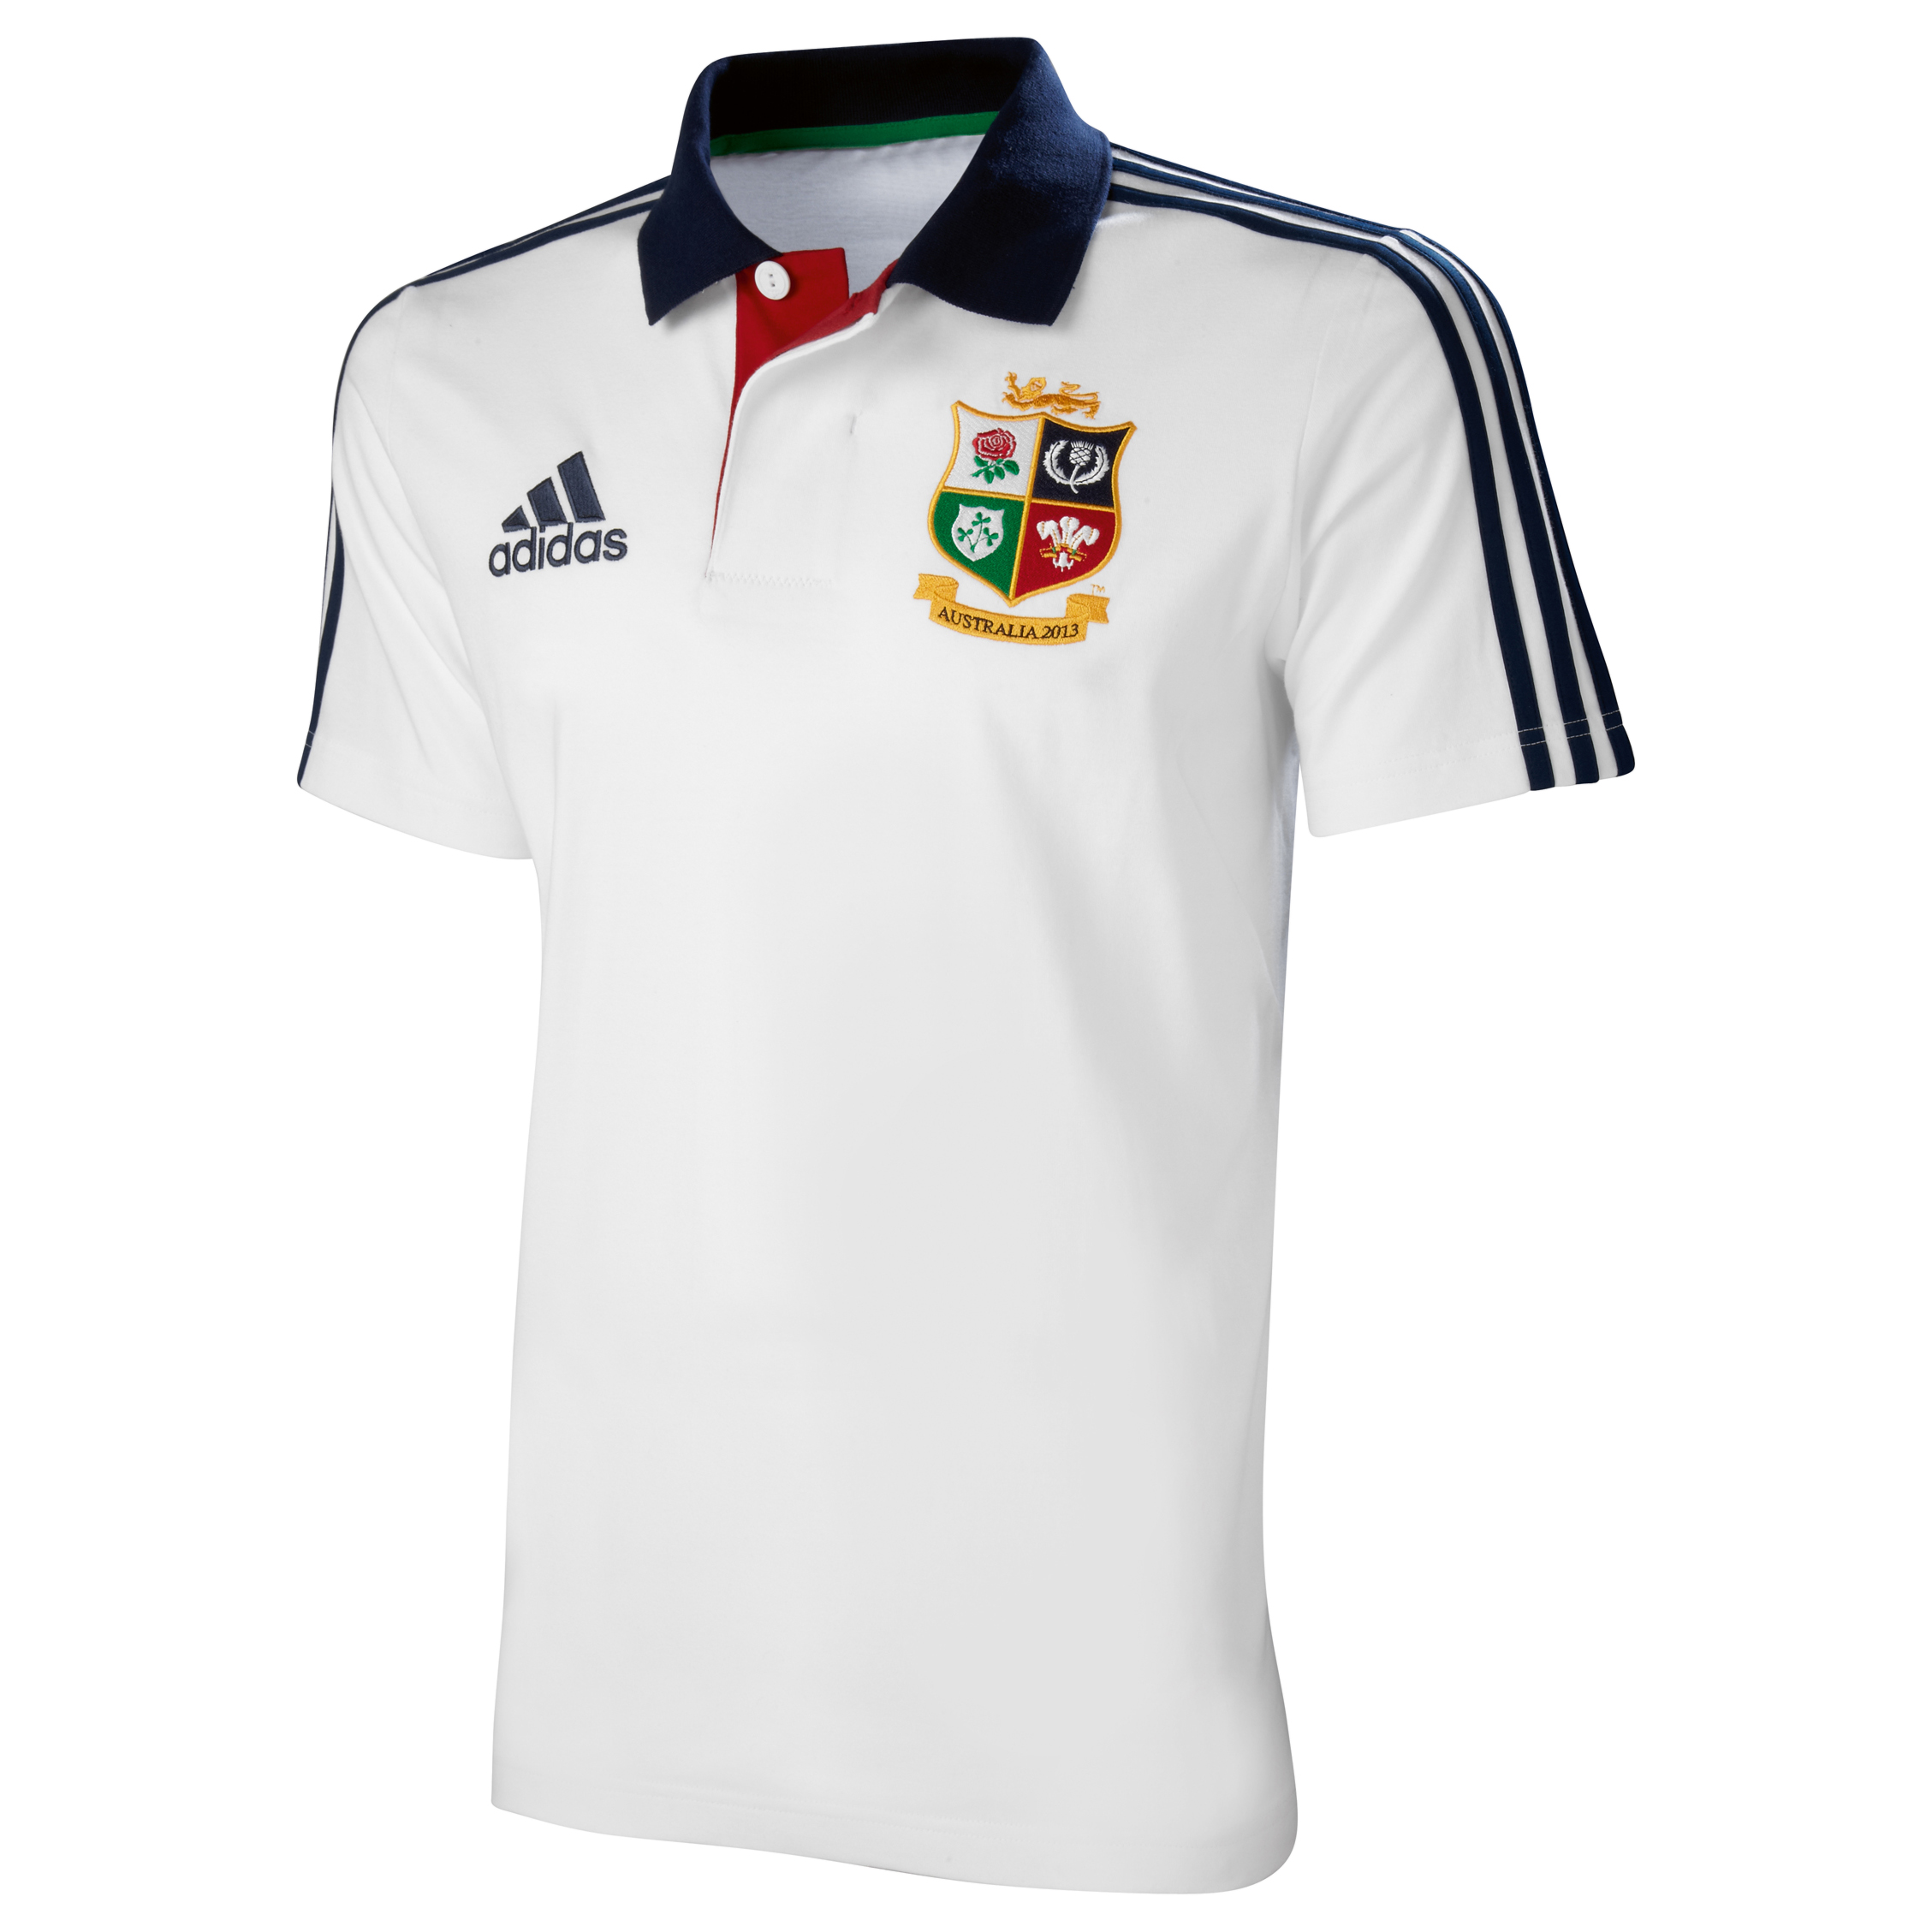 adidas British and Irish Lions Polo - White/Collegiate Navy